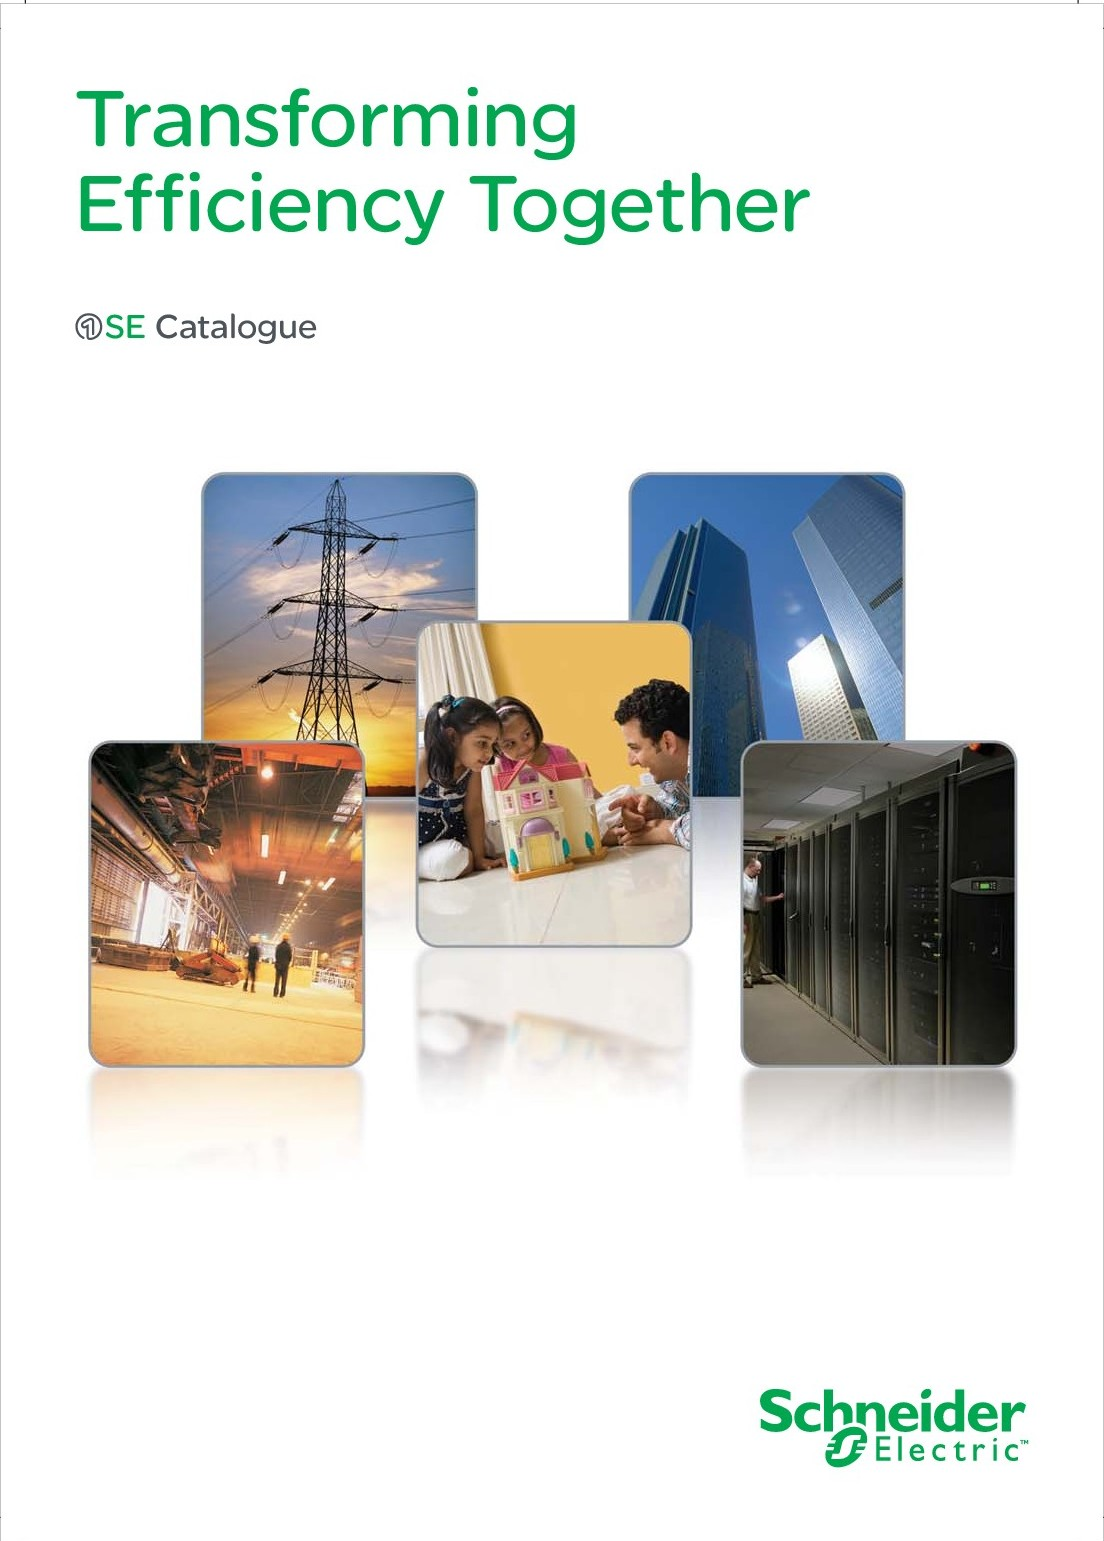 Schneider Electric Products Catalogues At Wizbox